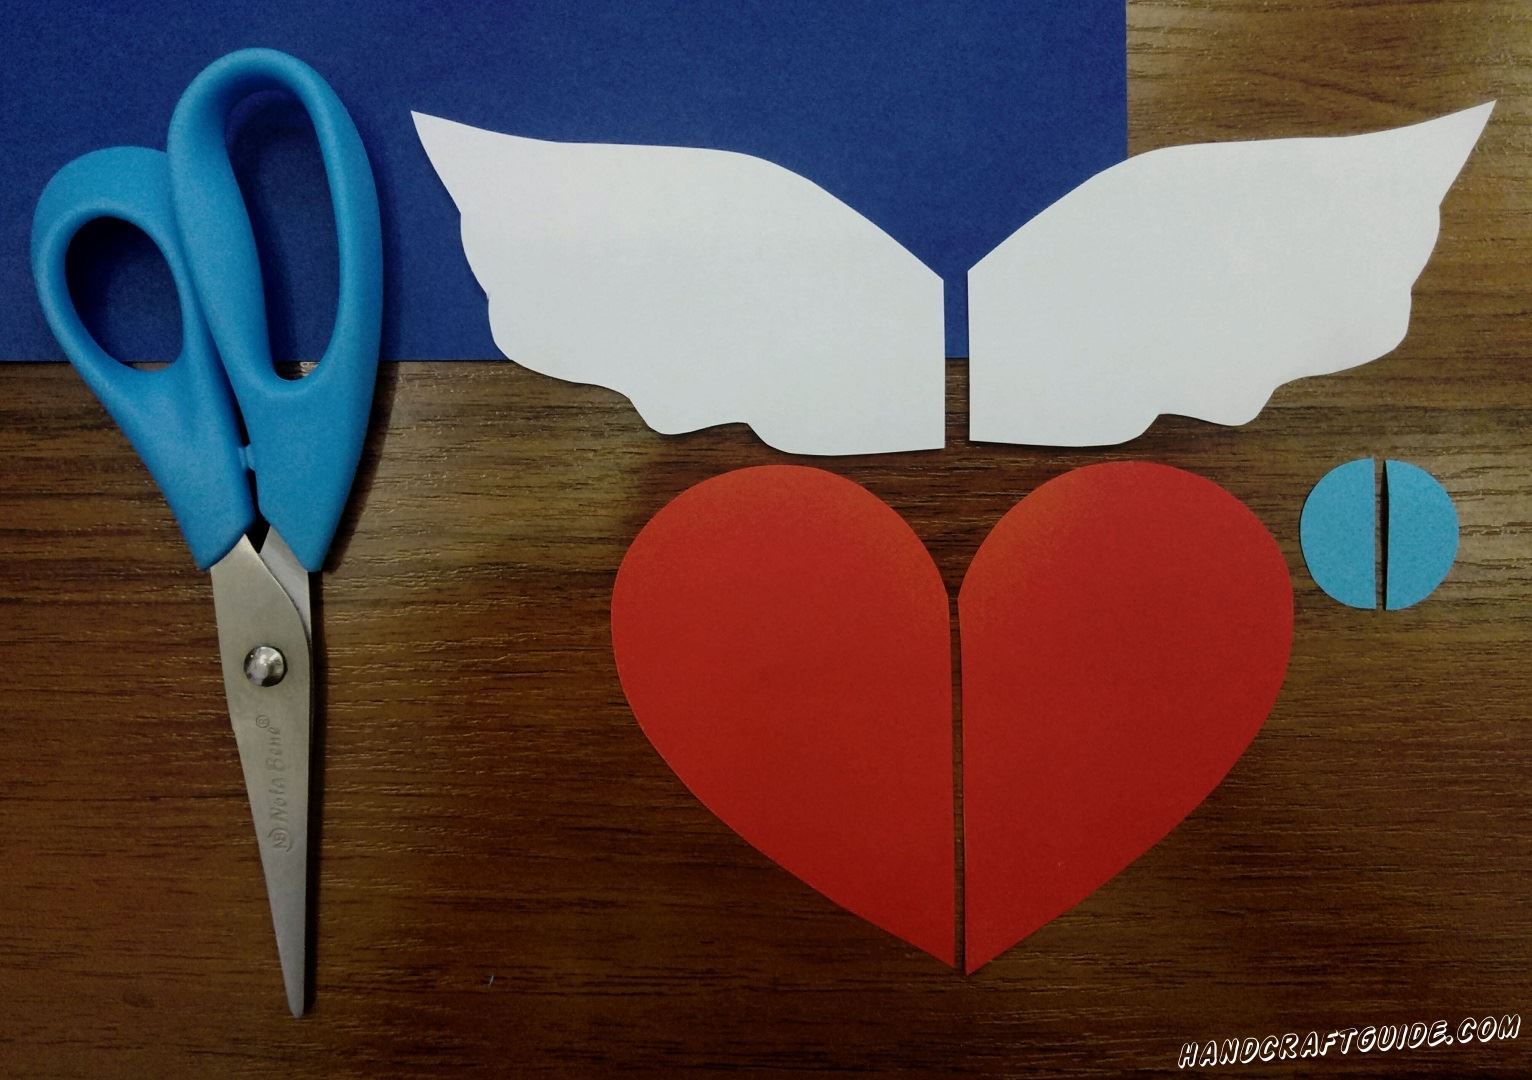 First cut out a large red heart and cut it in half. Then cut the wings out of white paper and also cut out a small blue circle and cut in half.